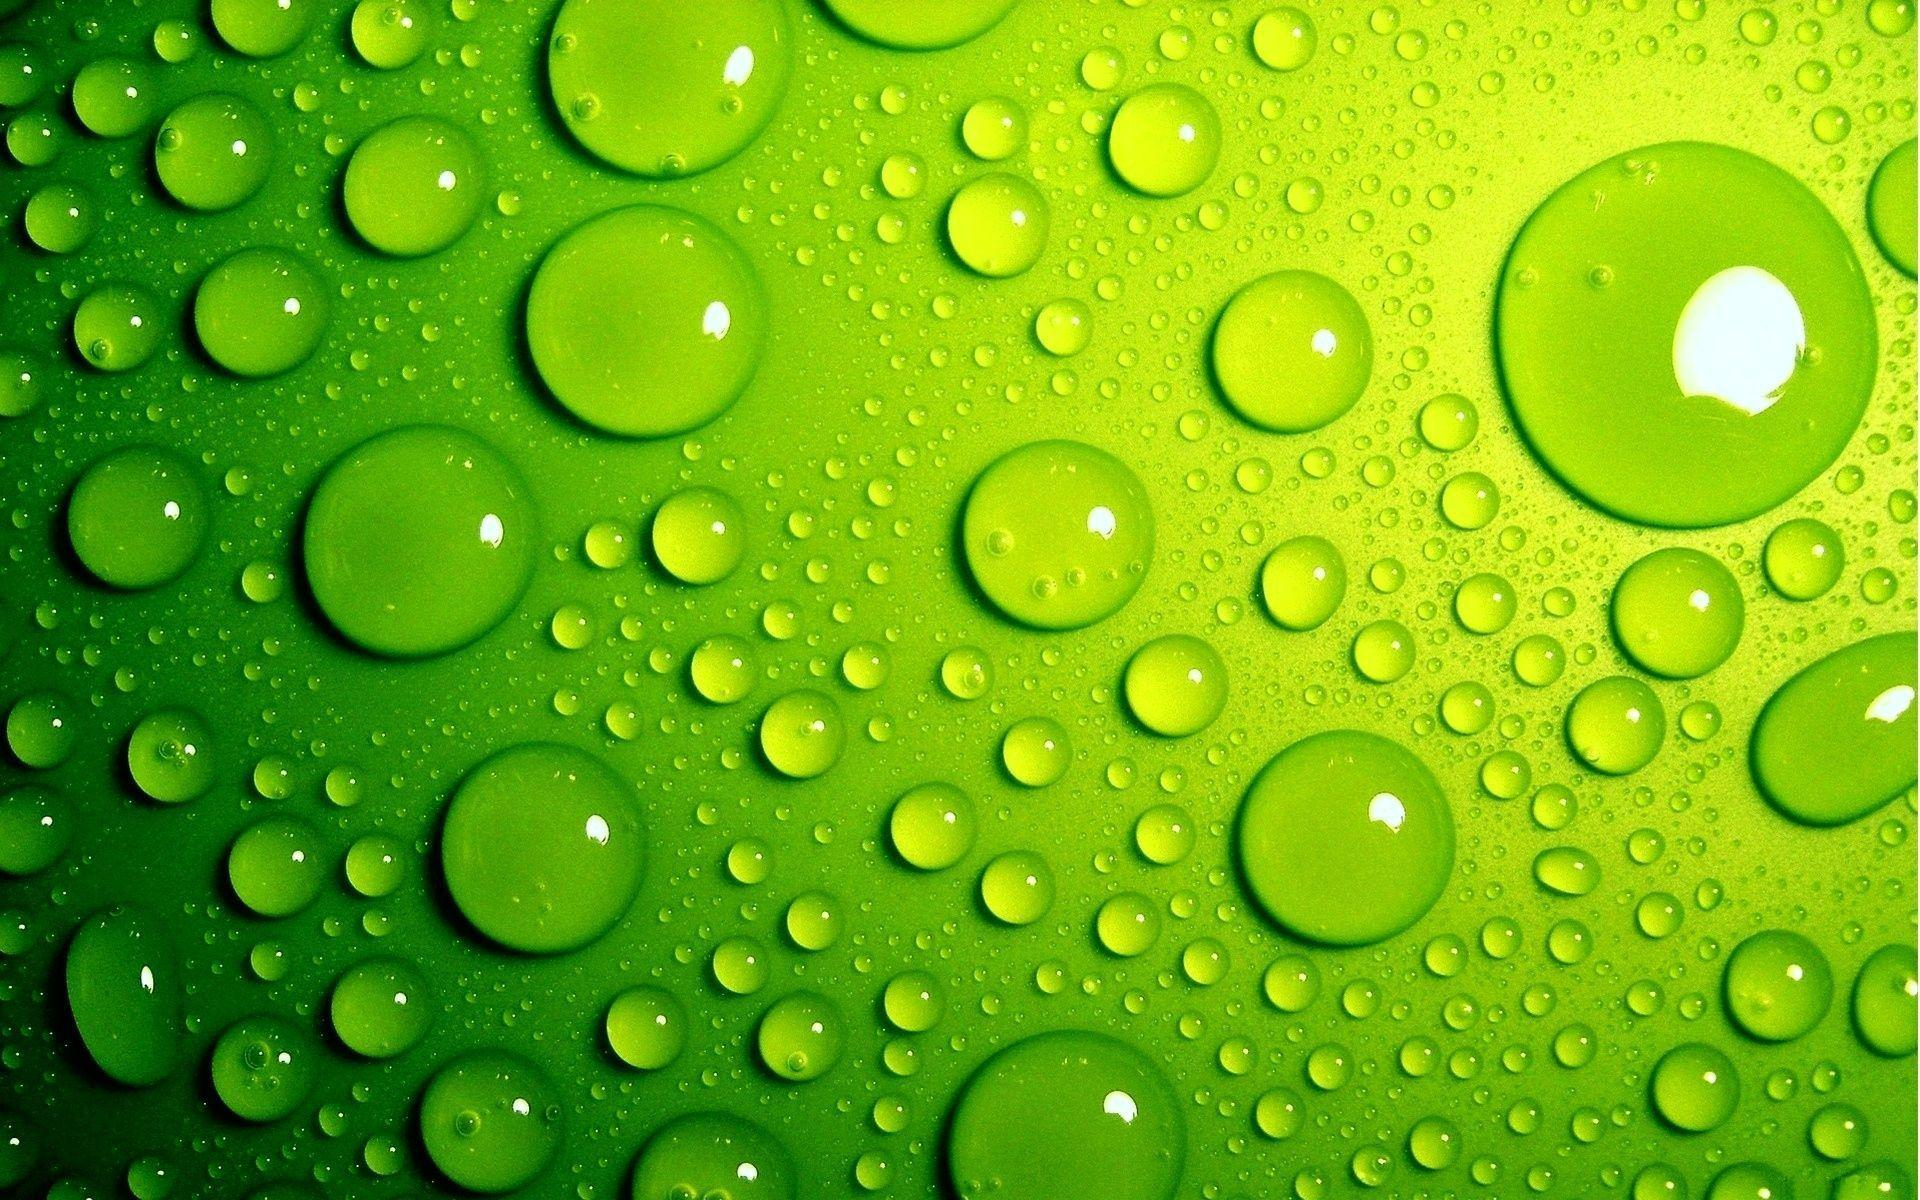 Abstract Water Drops HD Wallpapers Download | HD Free Wallpapers ...